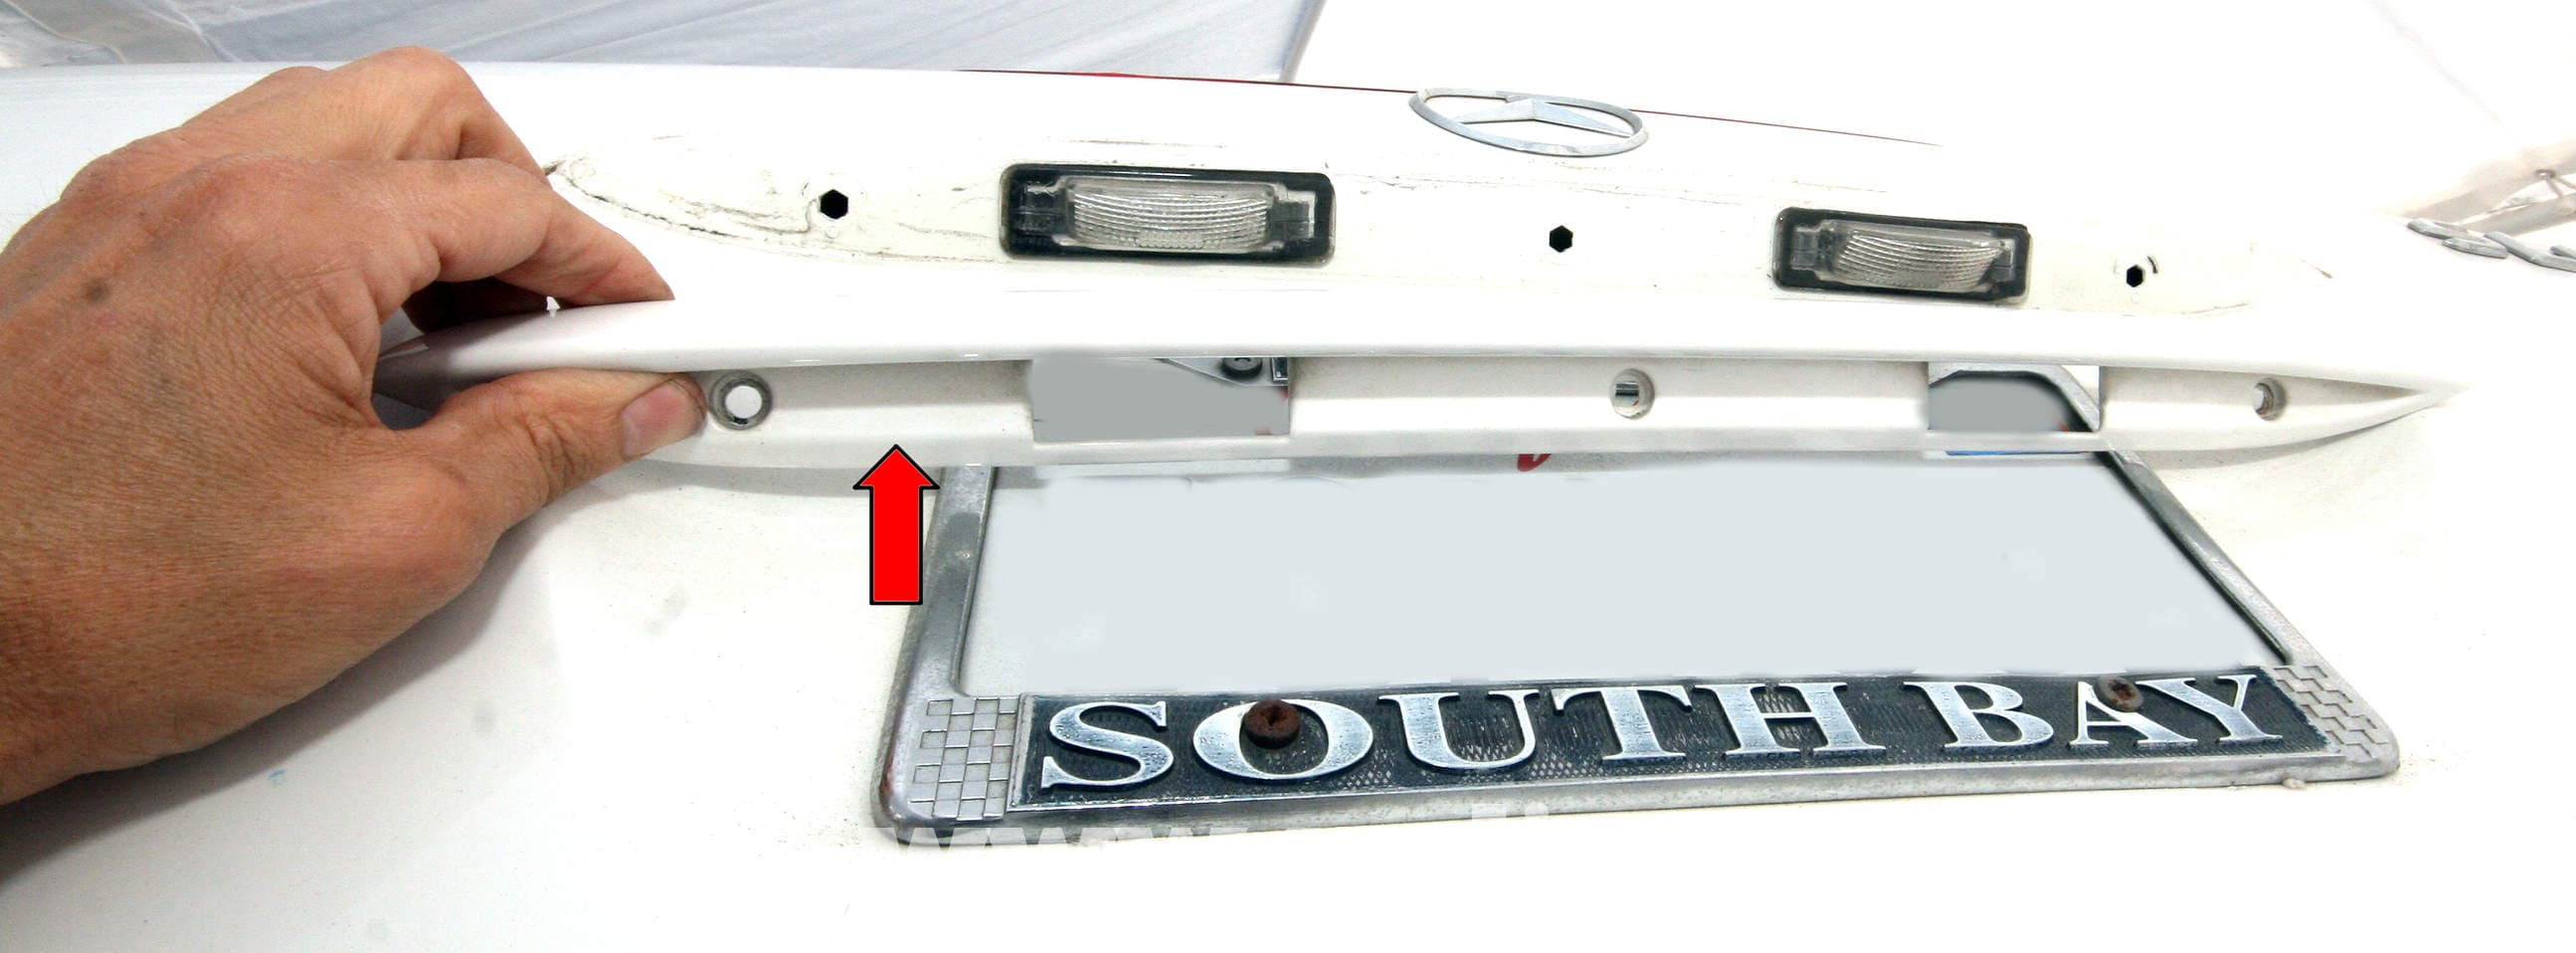 Mercedes-Benz SLK 230 License Plate Light Bulb Replacement ... on